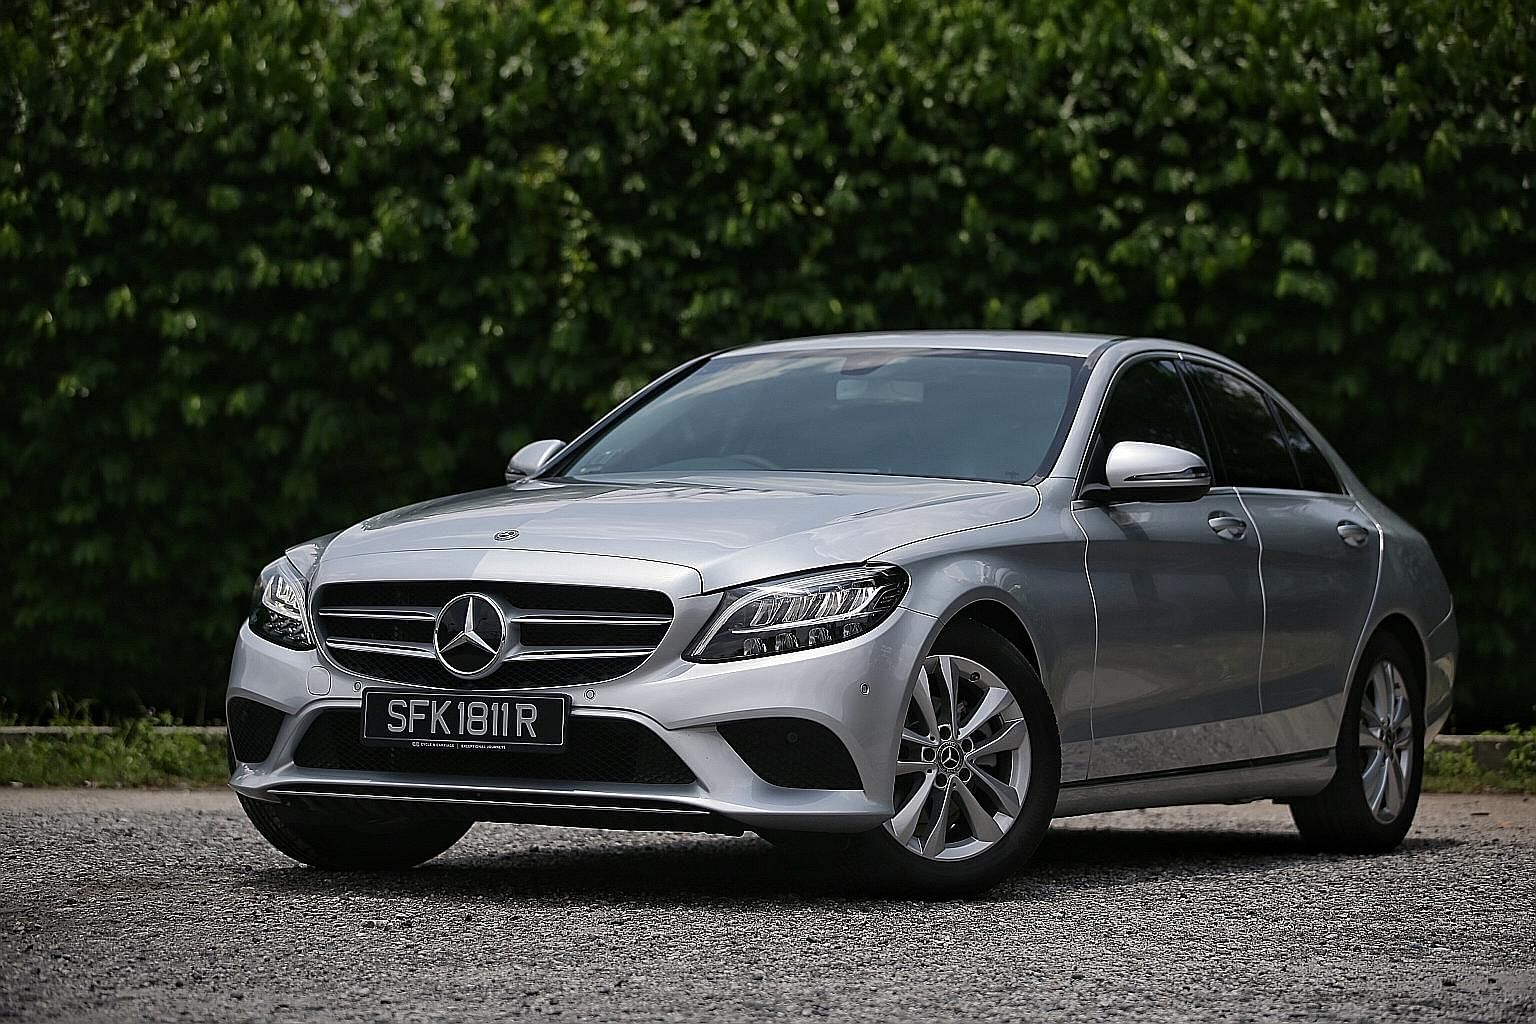 The Mercedes-Benz C160 has a fully digital instrument display, an infotainment tablet with Apple CarPlay and Android Auto as well as a reverse camera, a 64-colour ambient lighting system, a motorised boot lid with lock function and Active Parking Ass